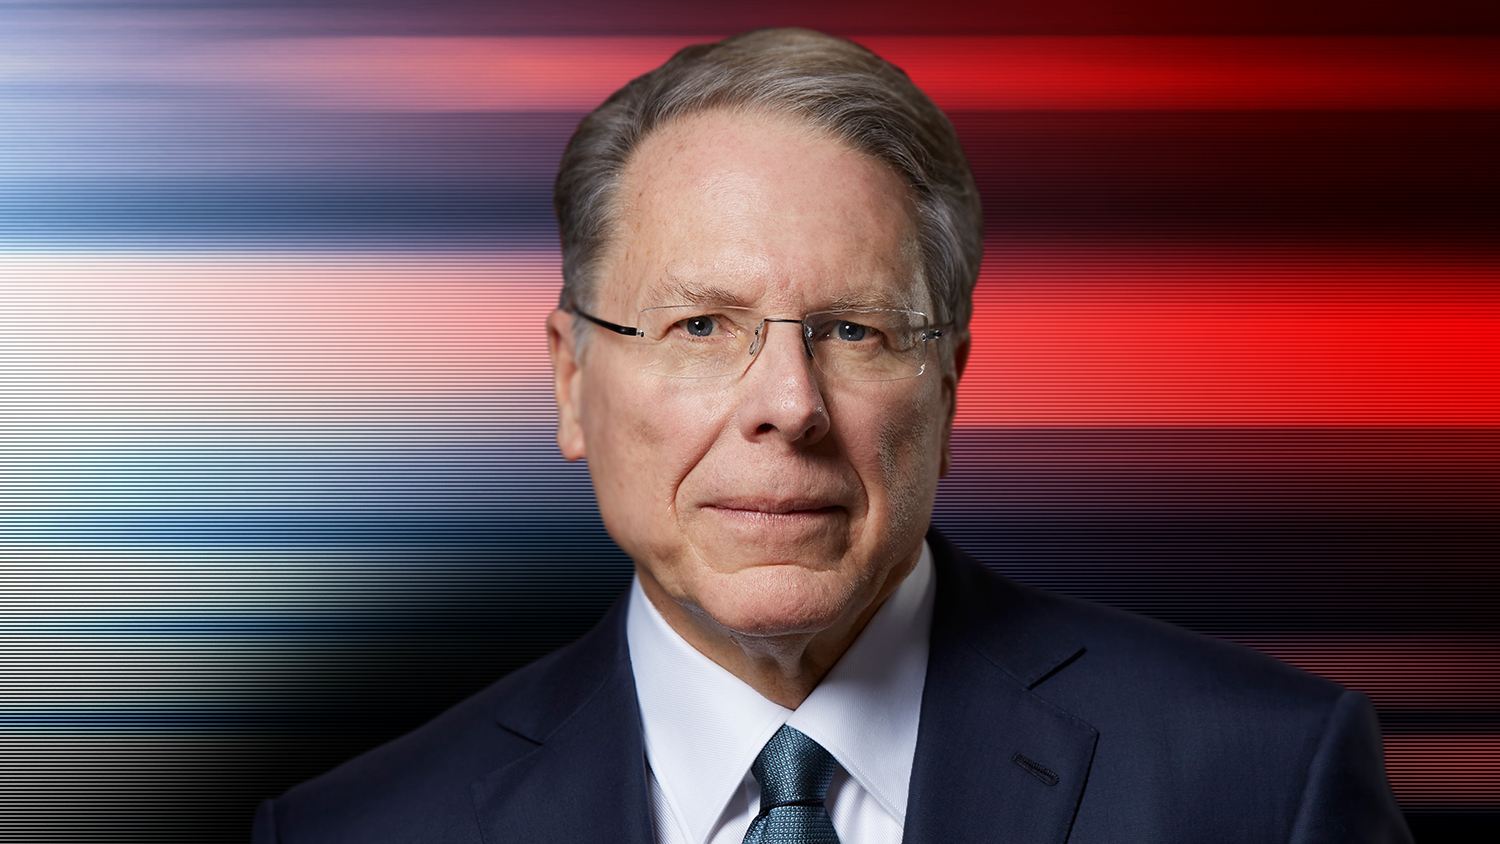 Wayne LaPierre on Face The Nation